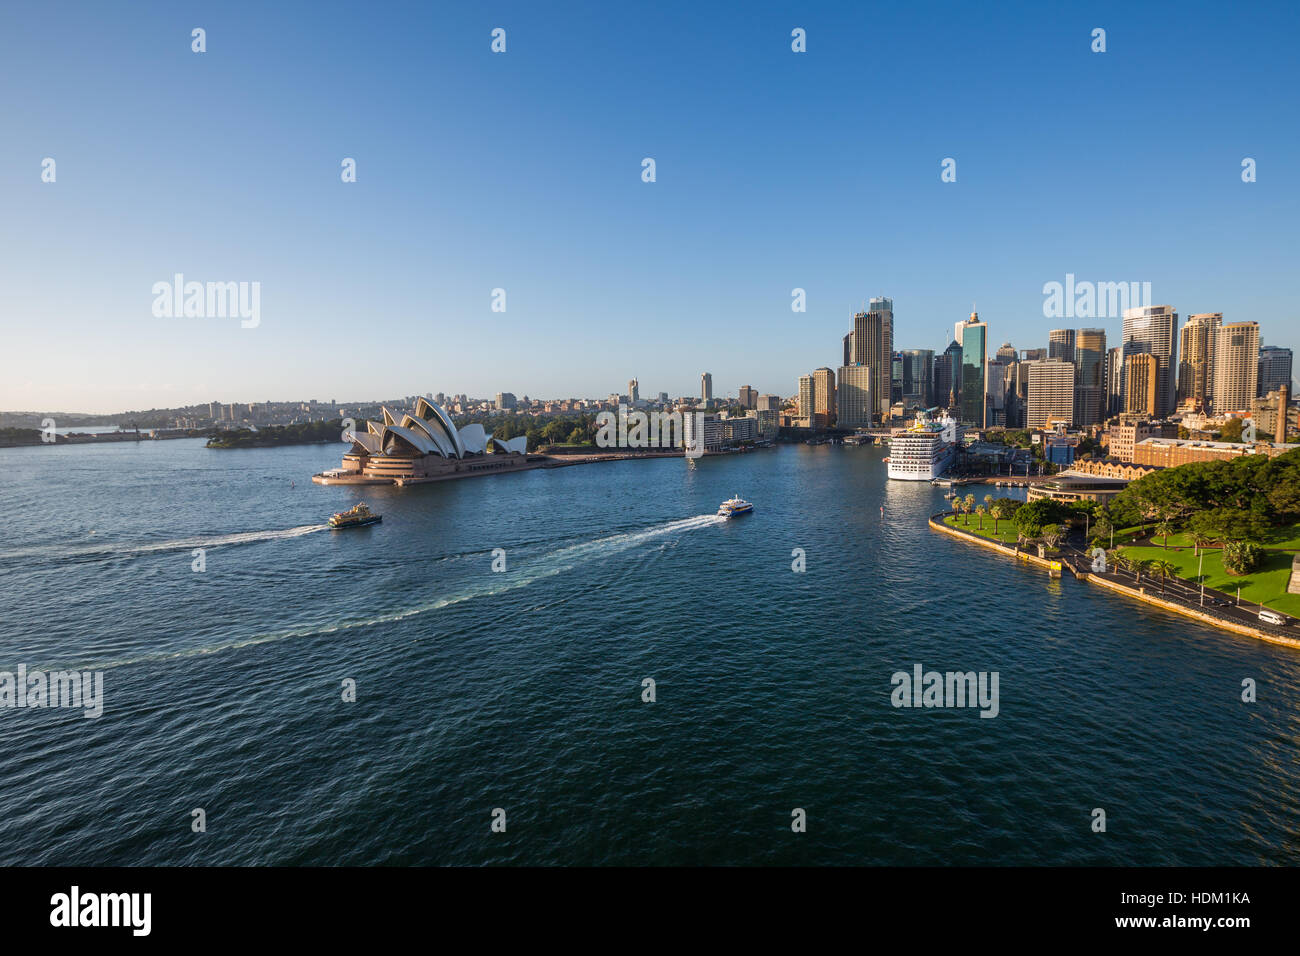 View of Sydney Harbour, the Opera House and the CBD from the bridge. - Stock Image